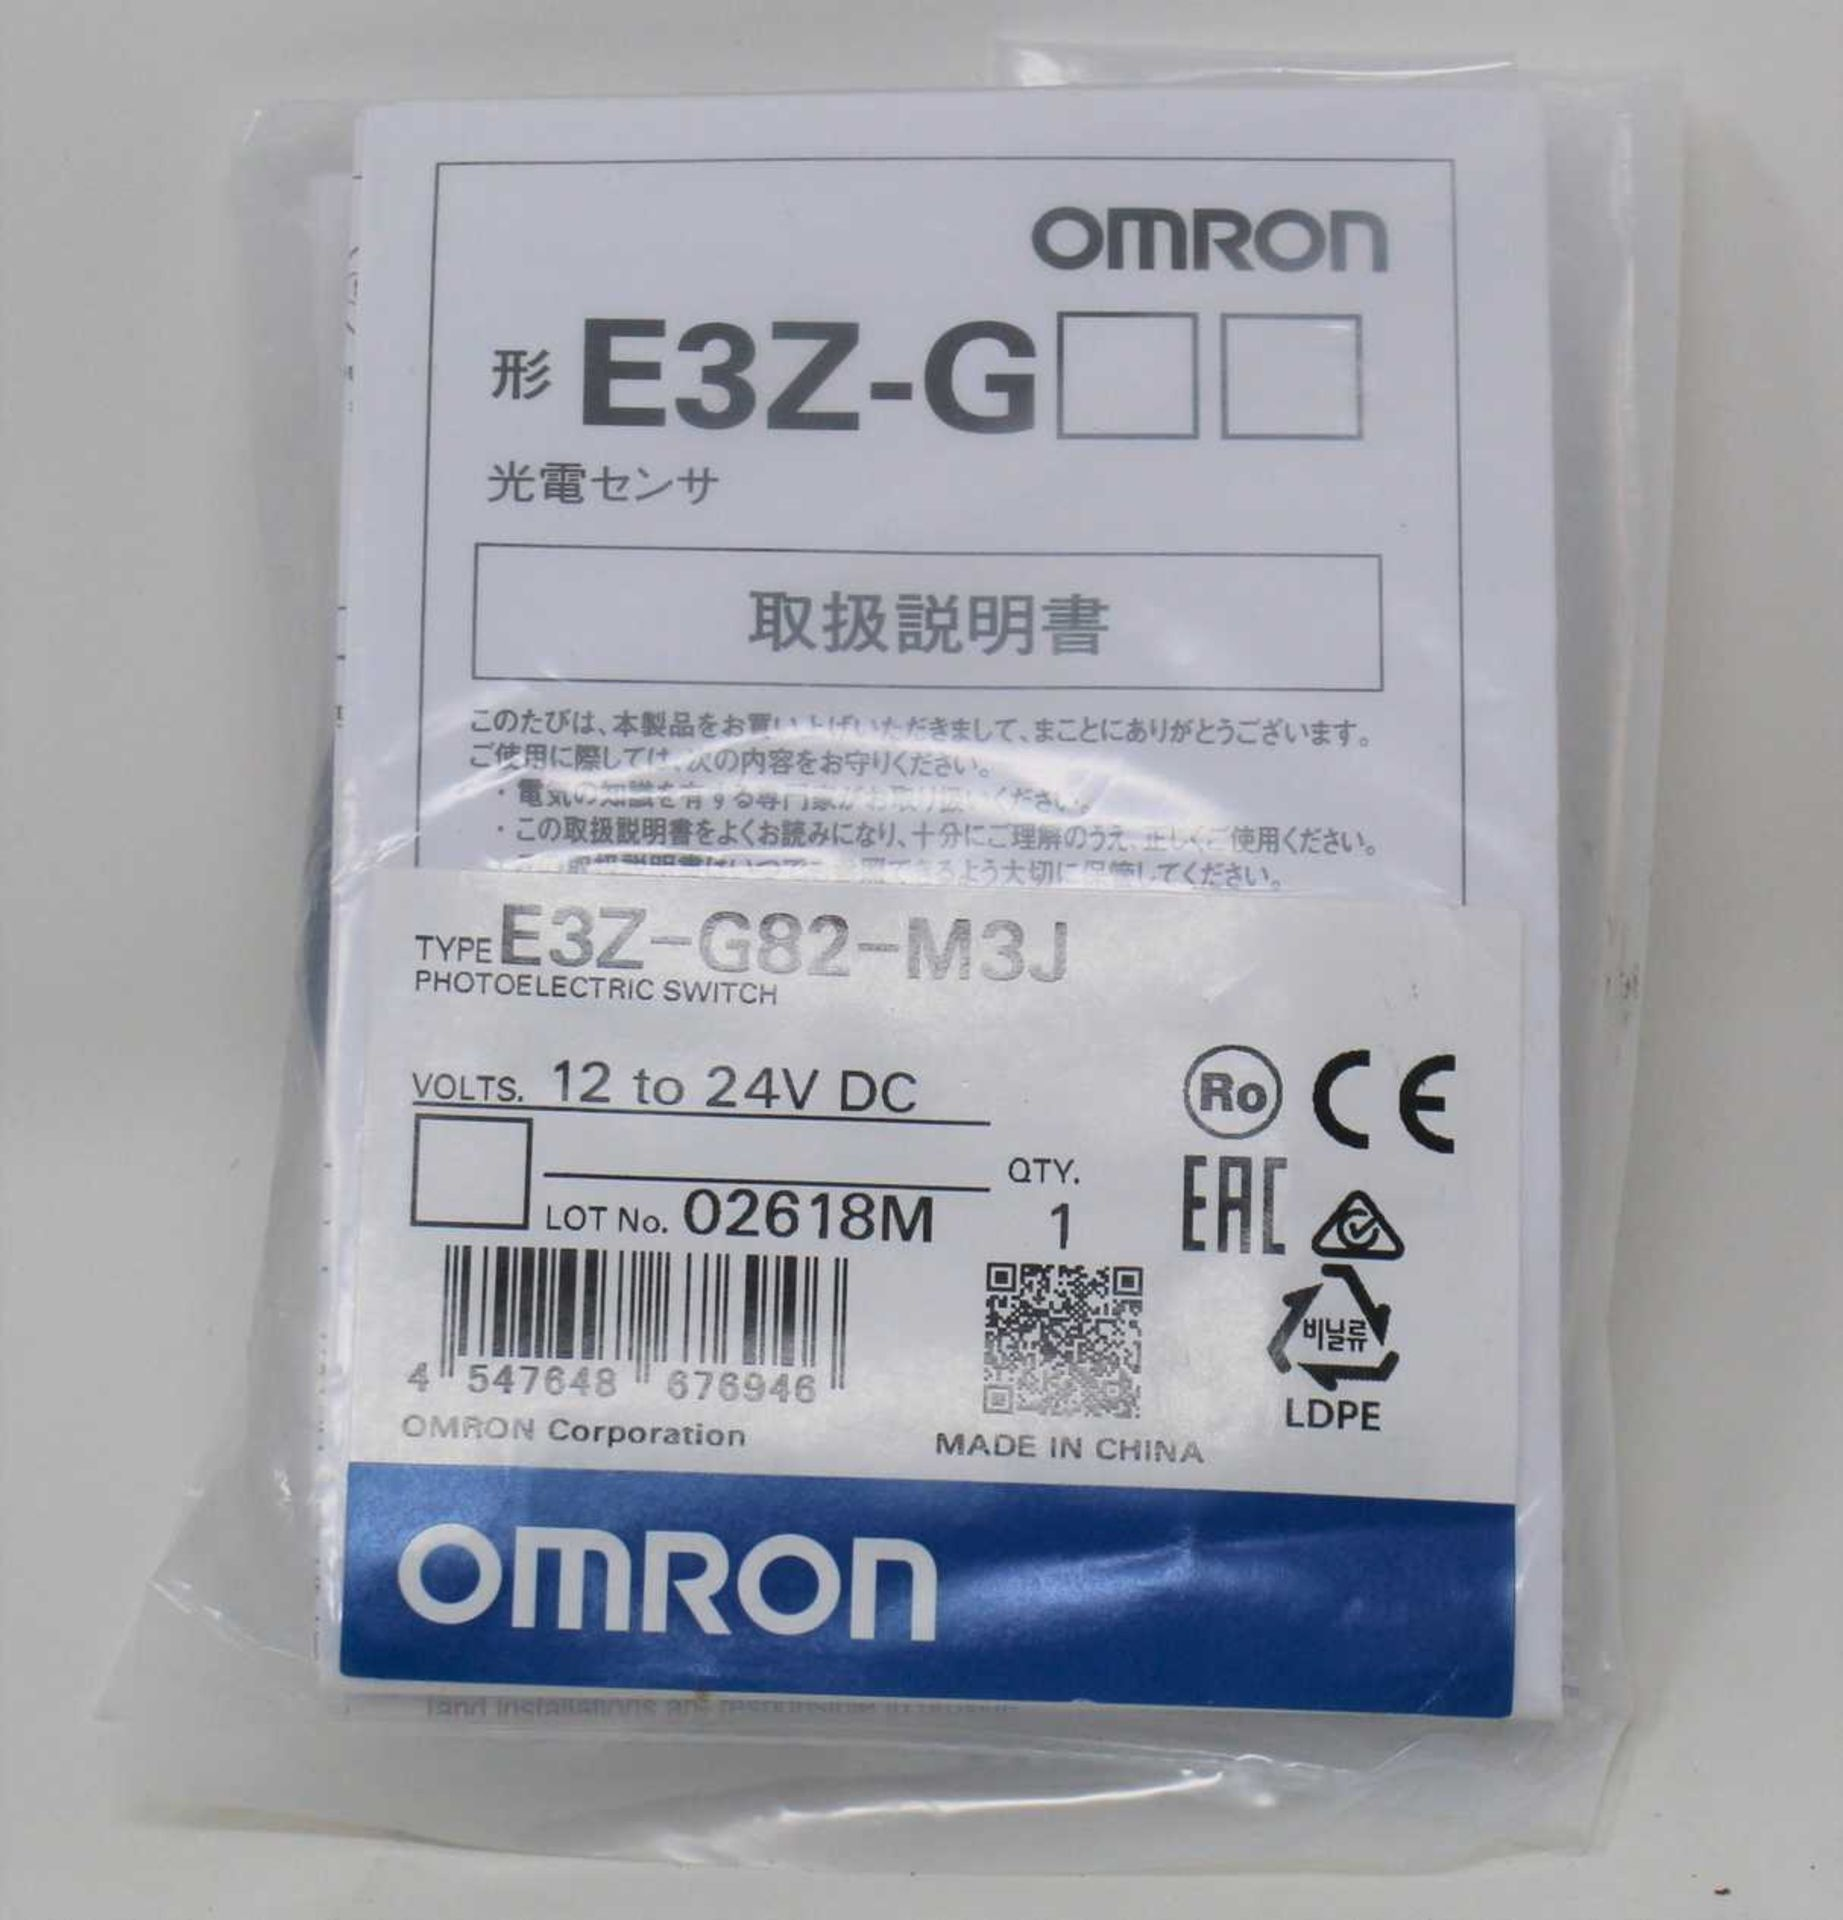 An as new Omron E3Z-G82-M3J Photoelectric Switch (Packaging sealed).